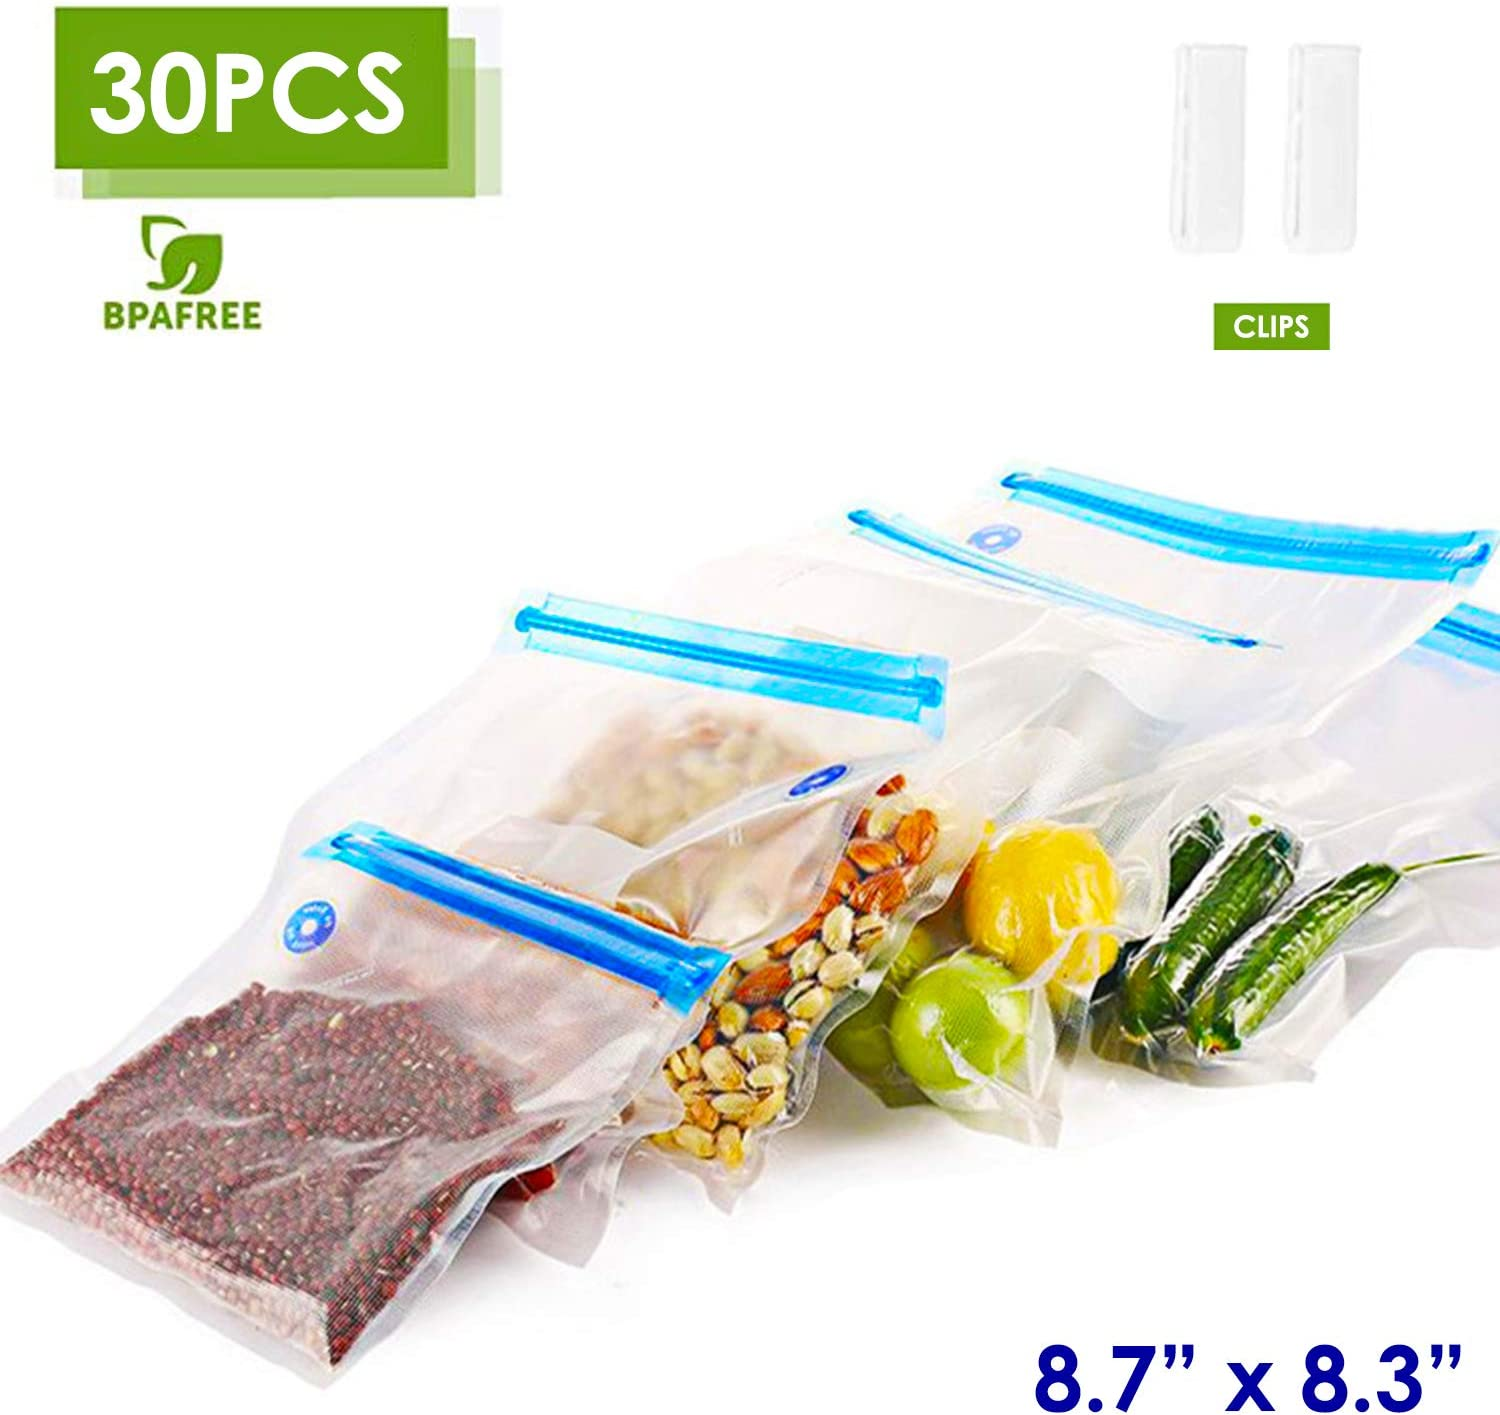 "VICARKO Sandwich Vacuum Sealer Bags Zipper Bags for Food Saver and Storage, compatible with VICARKO Handheld Vacuum Sealer Model VK9939 | 8.7"" * 8.3"", 30-Pack, Small"